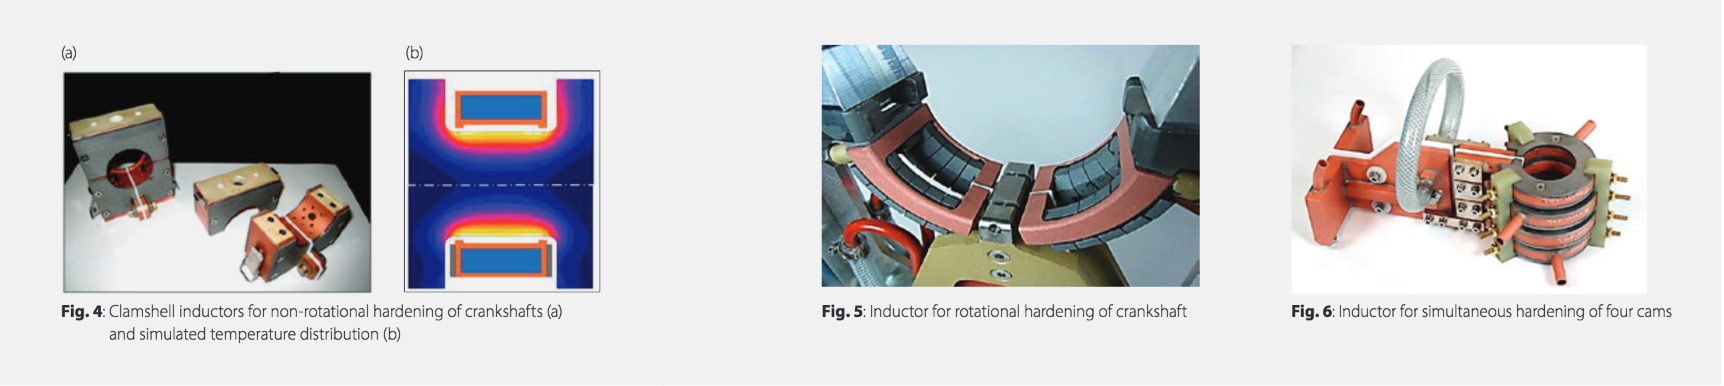 Fluxtrol | Magnetic Flux Control in Induction Systems - Figures 4, 5, 6: 4. Clamshell inductors for non-rotational hardening of crankshafts (a) and simulated temperature distribution (b). 5. Inductor for rotational hardening of crankshaft. 6. Inductor for simultaneous hardening of four cams.